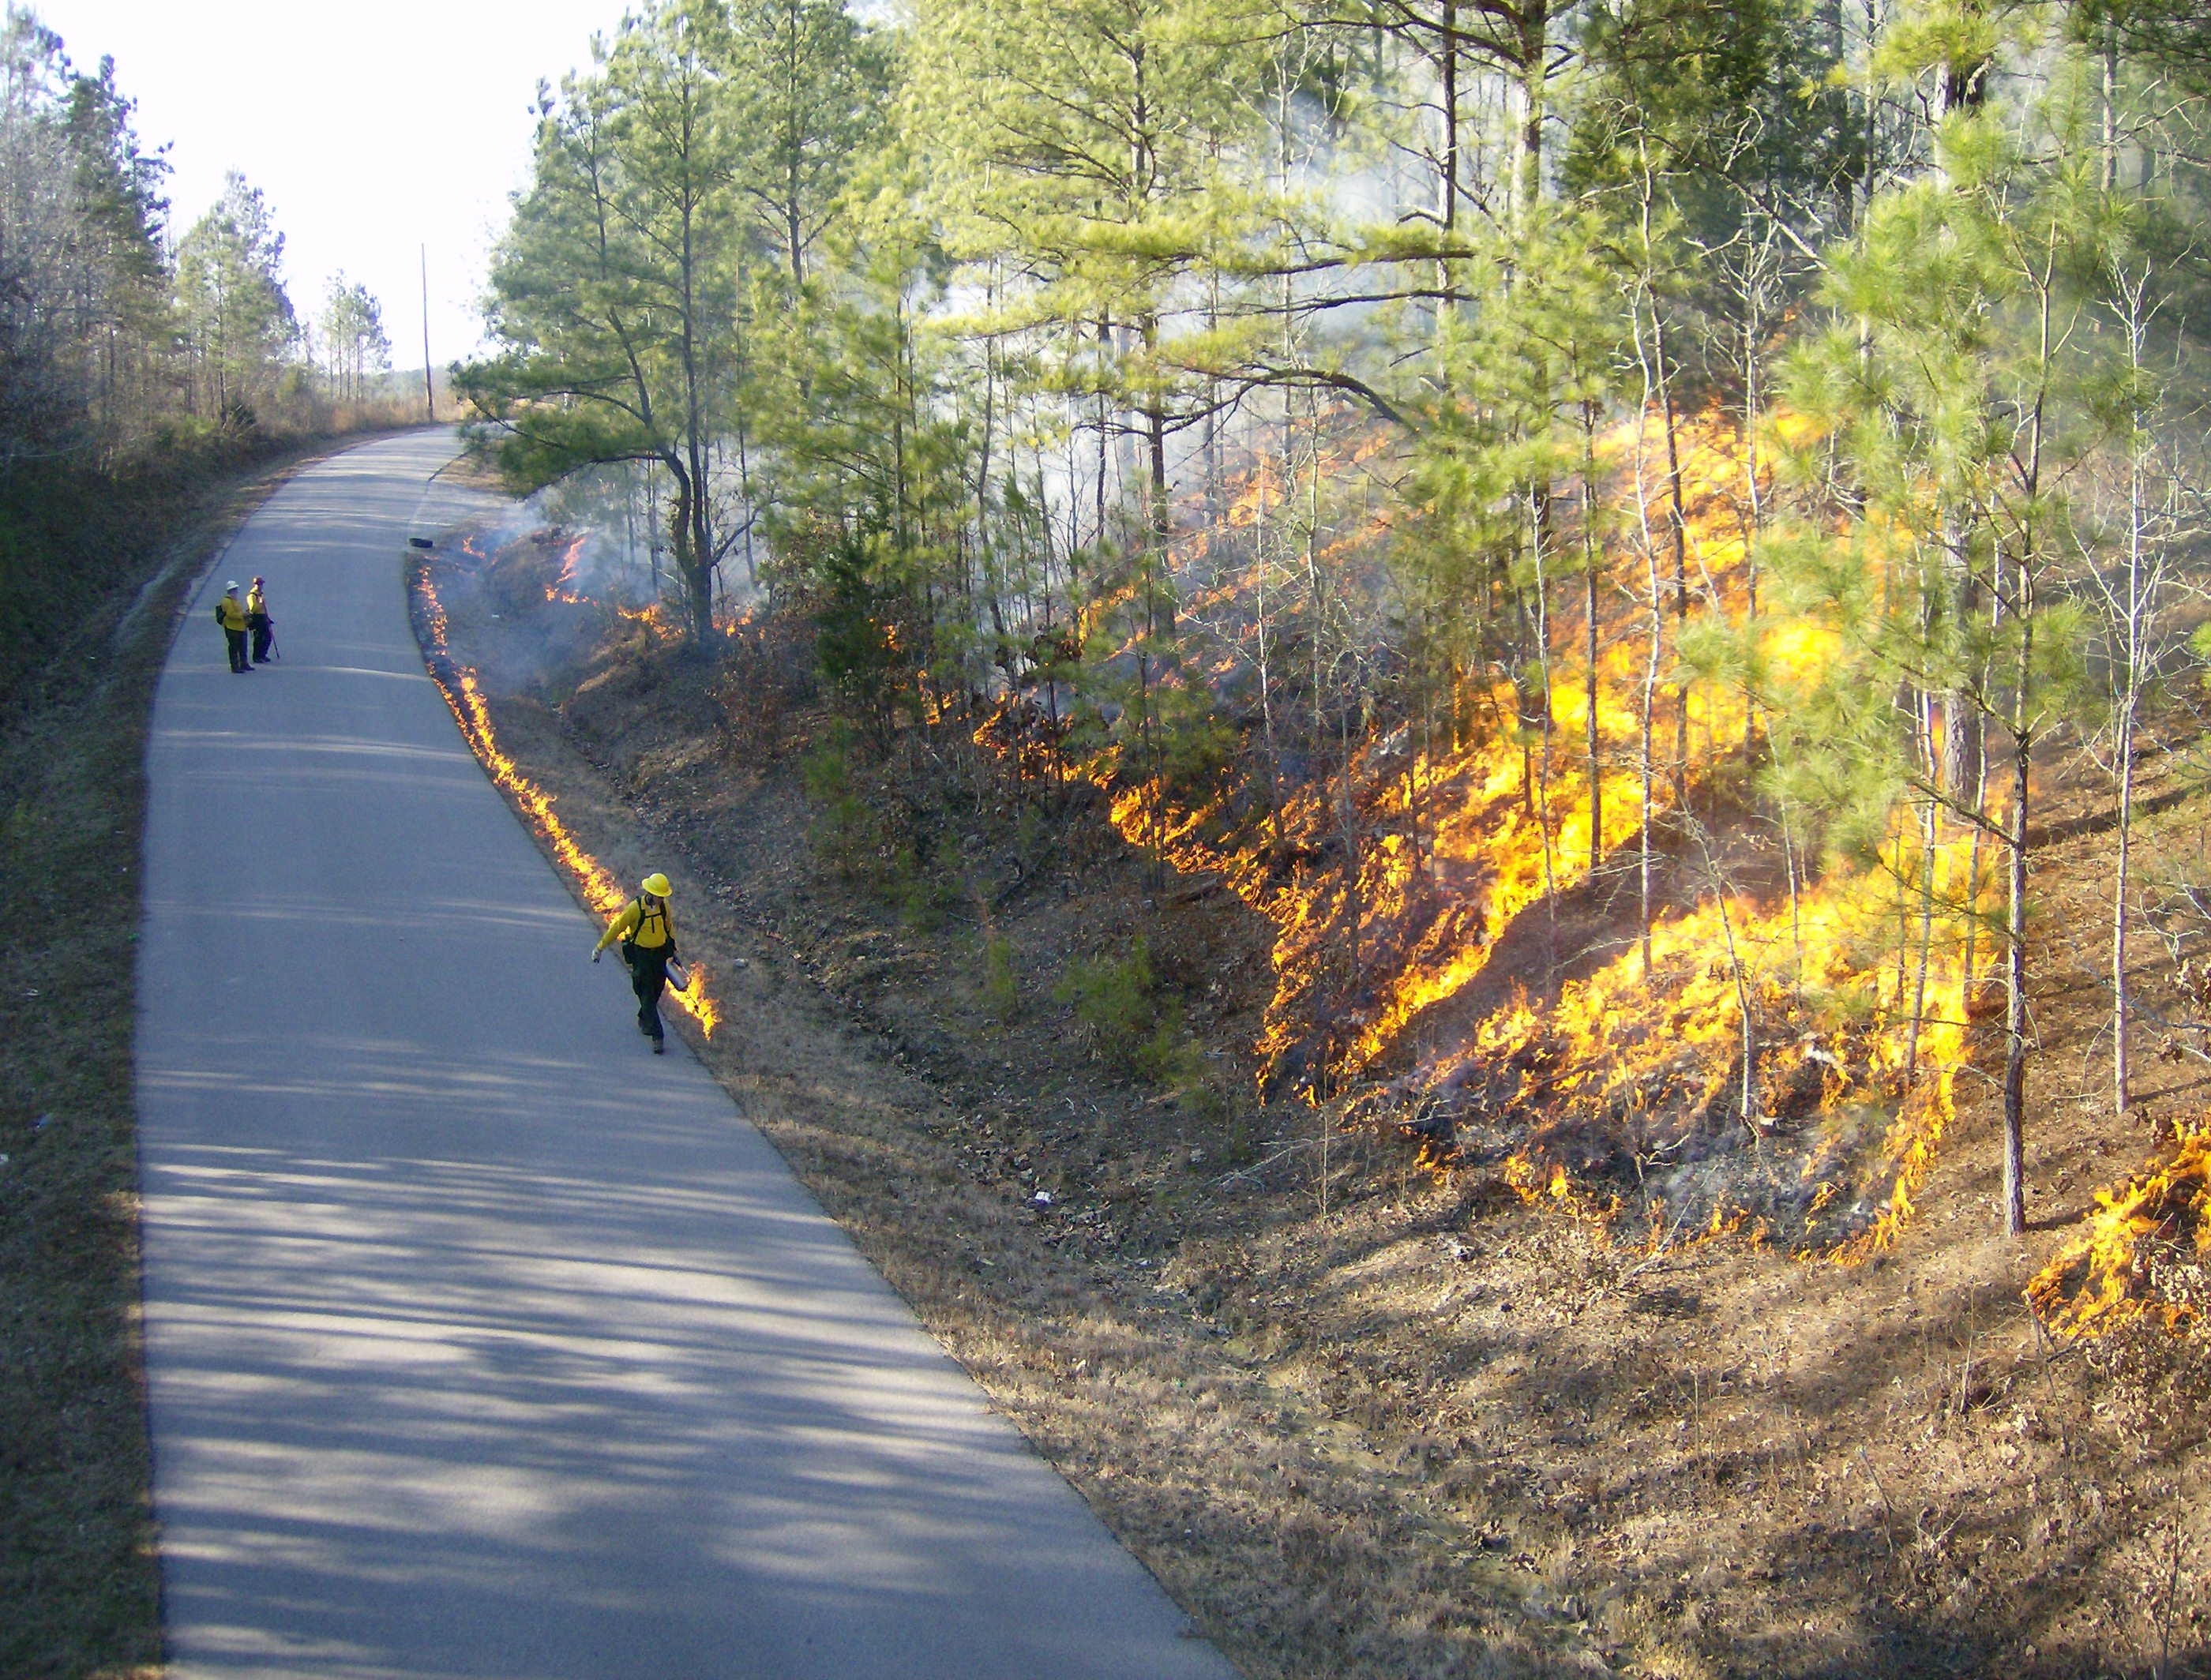 Prescribed burn at Twentymile Bottom Overlook.